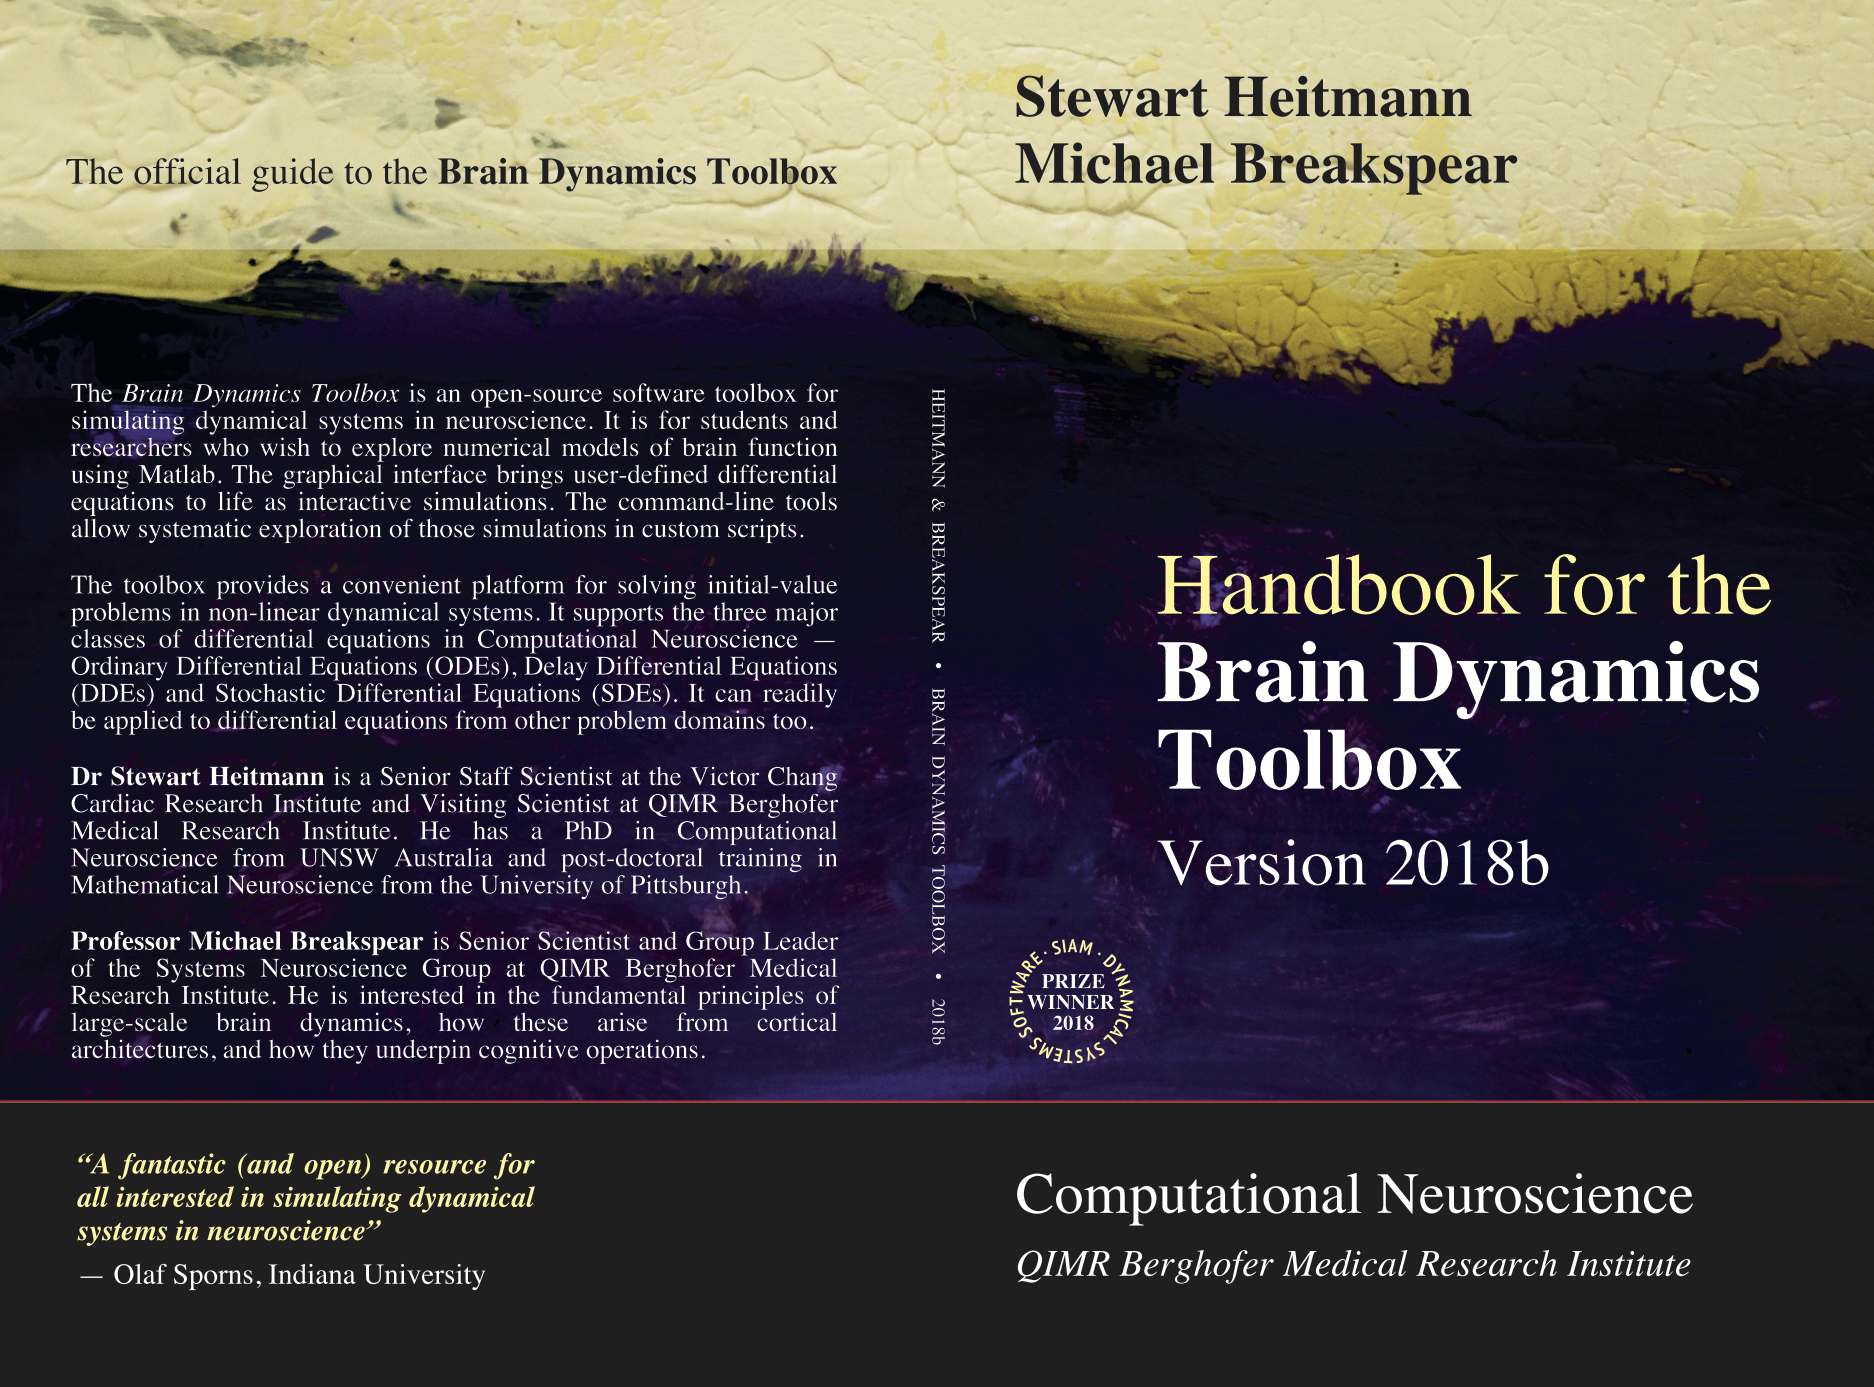 Handbook for the Brain Dynamics Toolbox